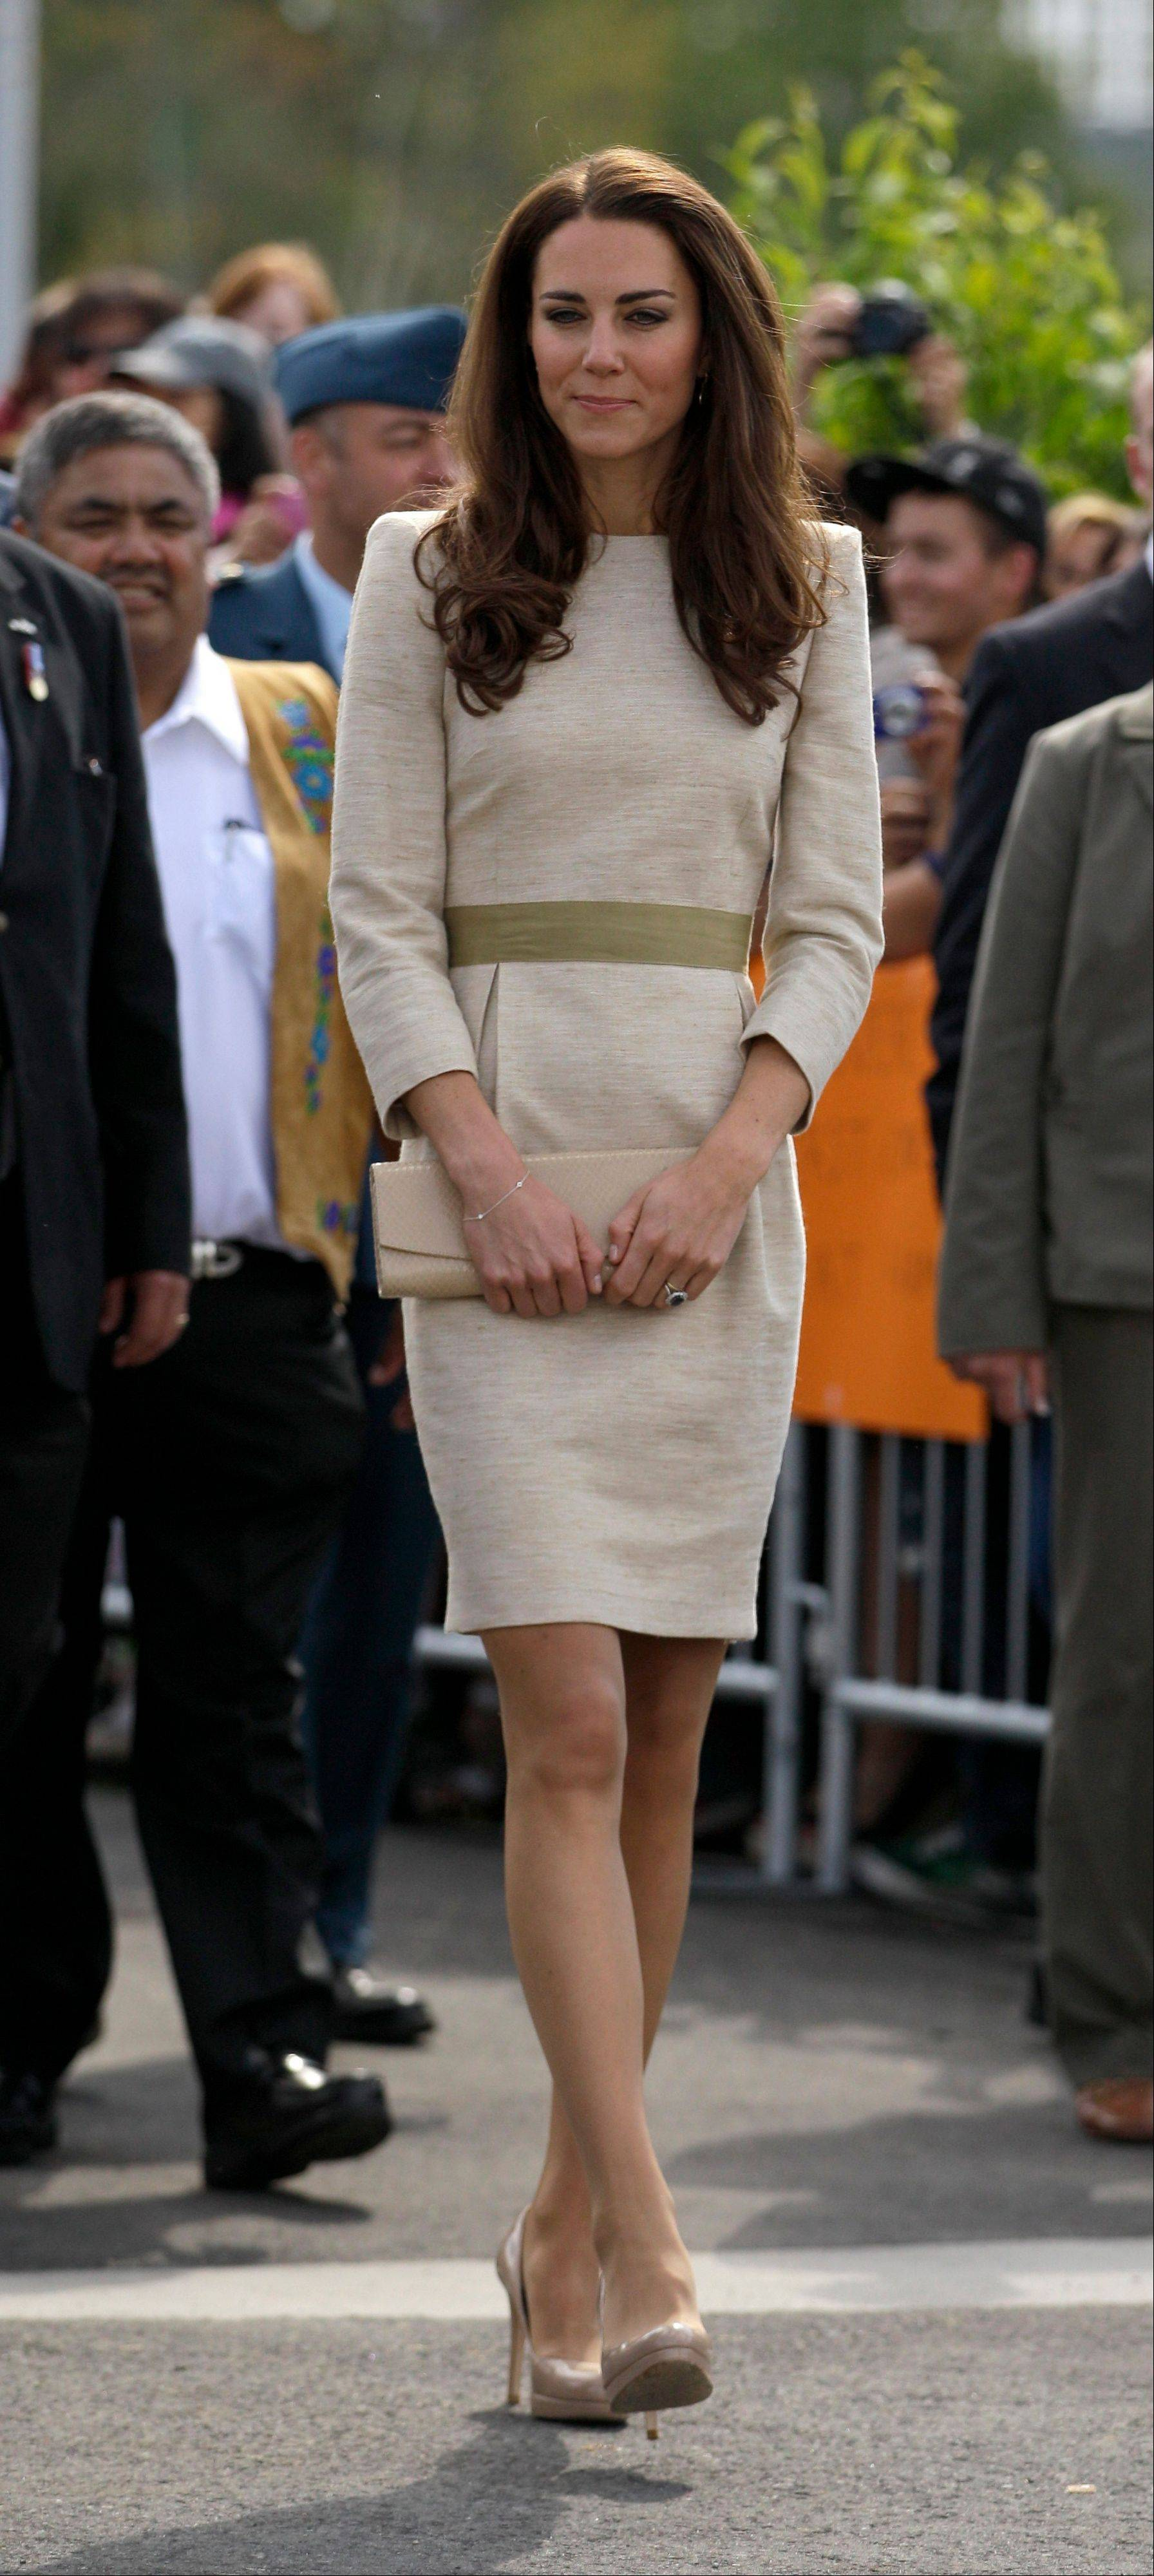 Kate, the Duchess of Cambridge, during a welcome ceremony in Yellowknife, Canada as the Royal couple continue their Royal Tour of Canada. Since the heyday of the 1980s, there�s been a casual revolution, a revolt against covered-but-sheer legs. Now hosiery is making its comeback.